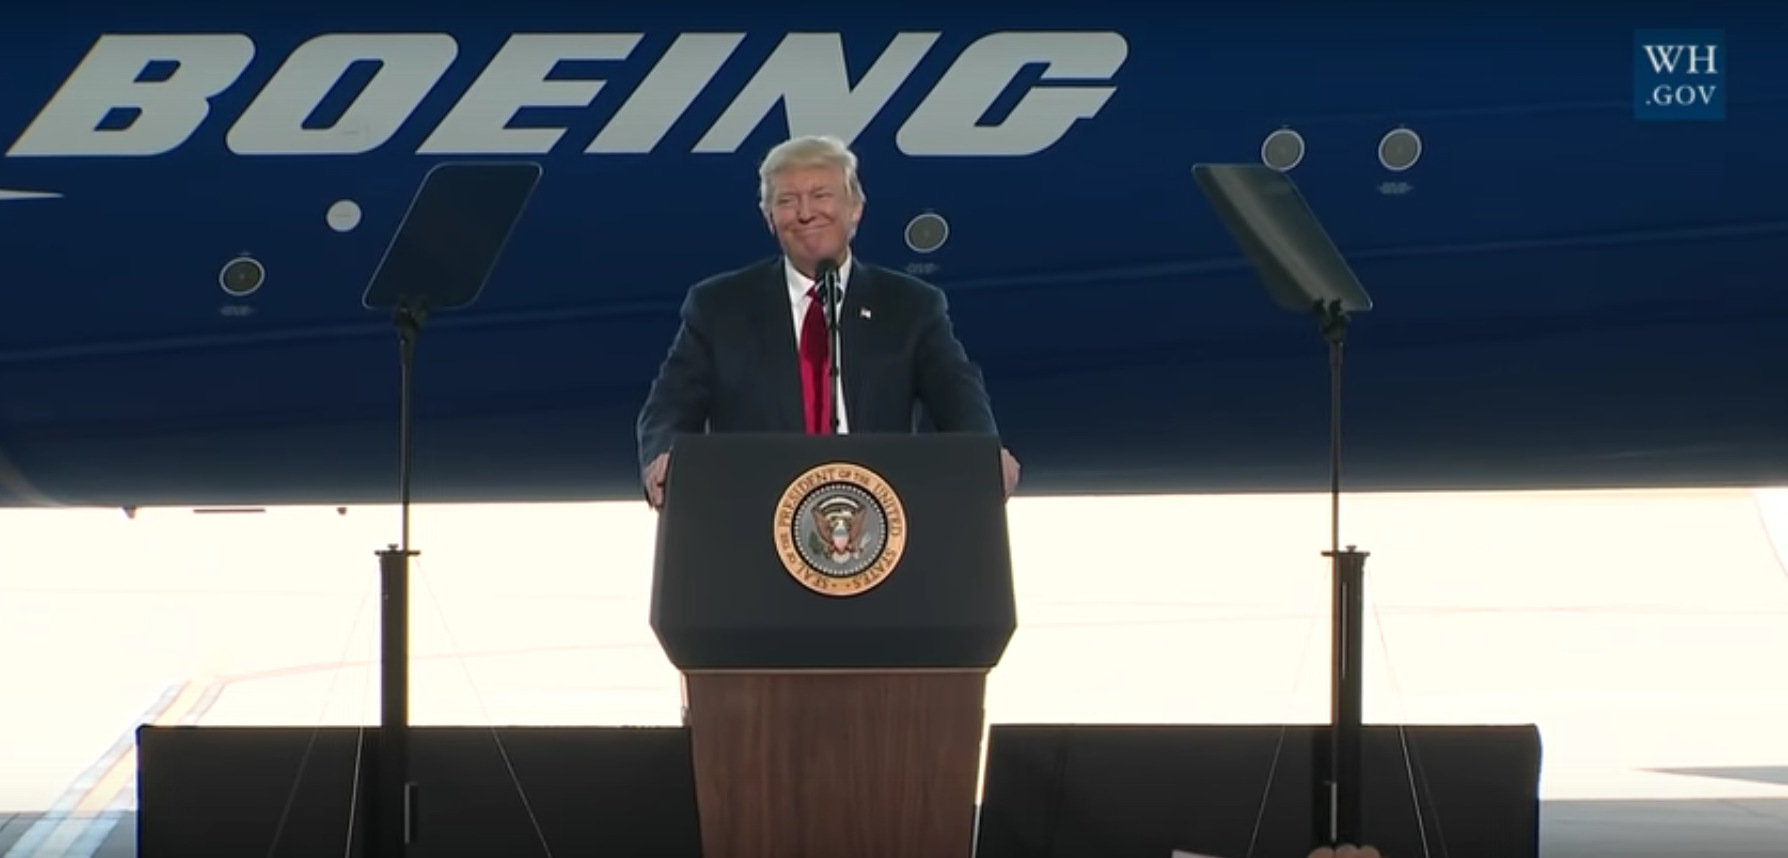 President Donald J. Trump addresses attendees at the unveiling of The Boeing Company's 787-10 aircraft at the company's North Charleston, SC facility on 2/17/17